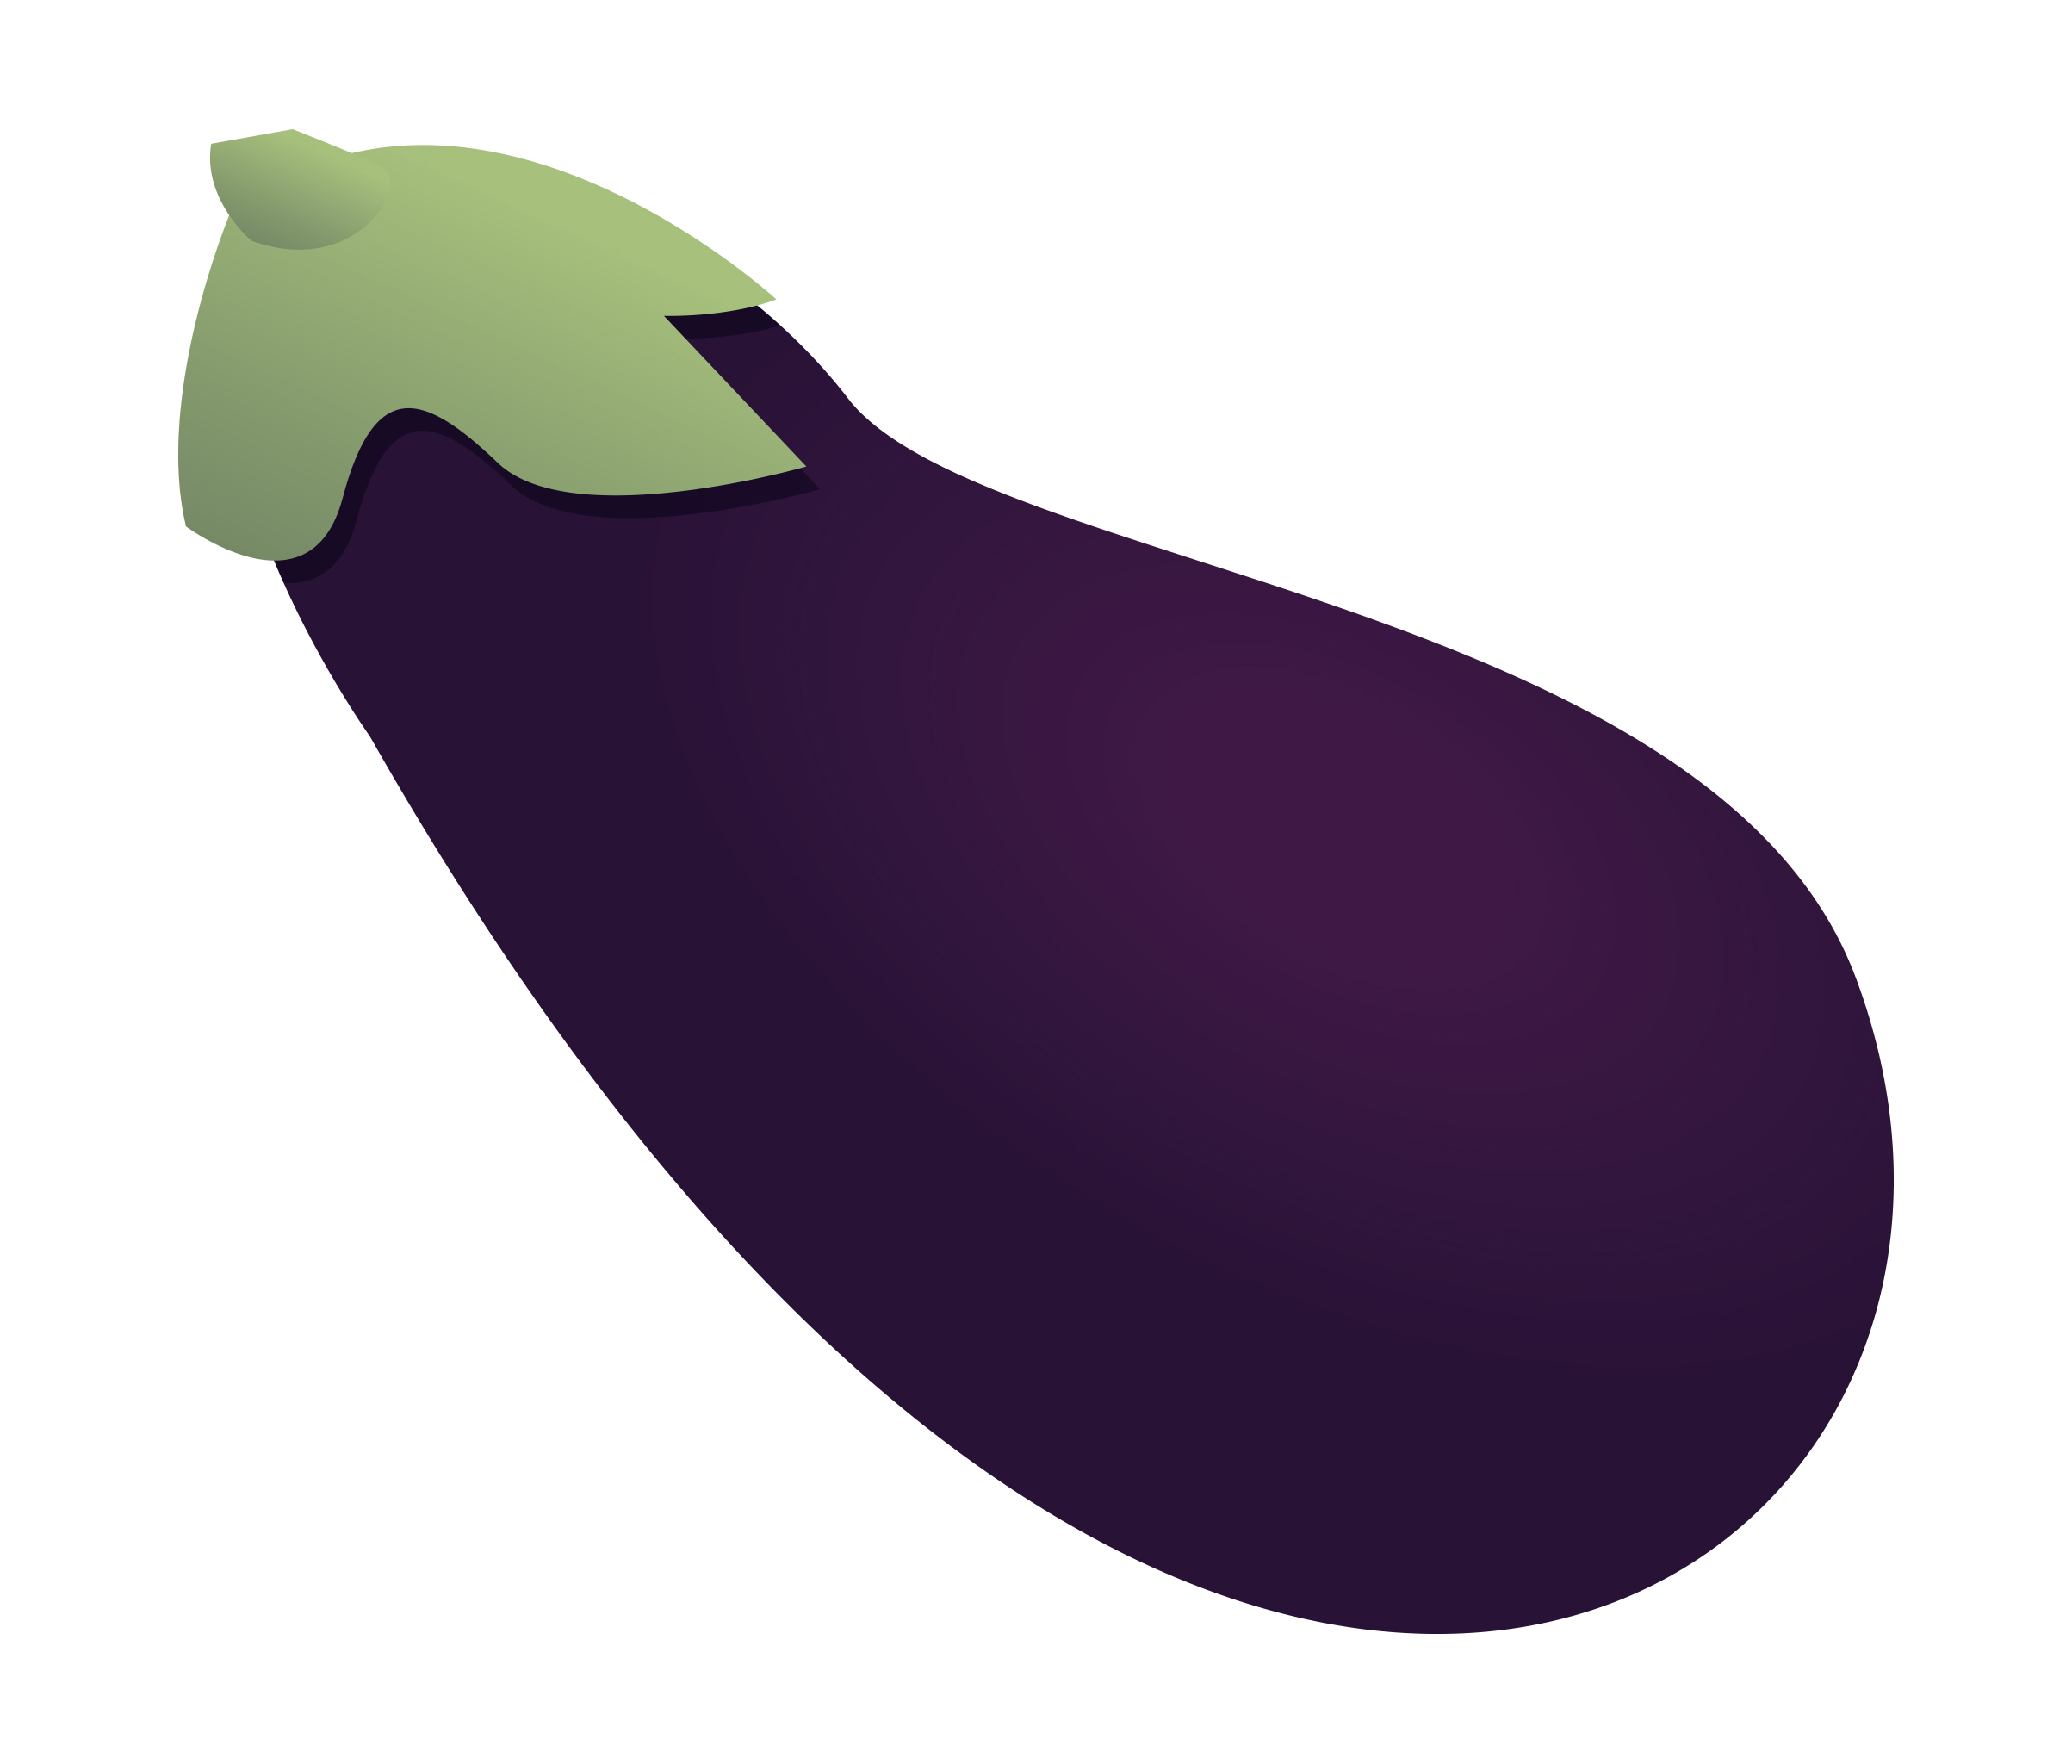 View Eggplant.jpg Clipart - Free Nutrition and Healthy Food Clipart